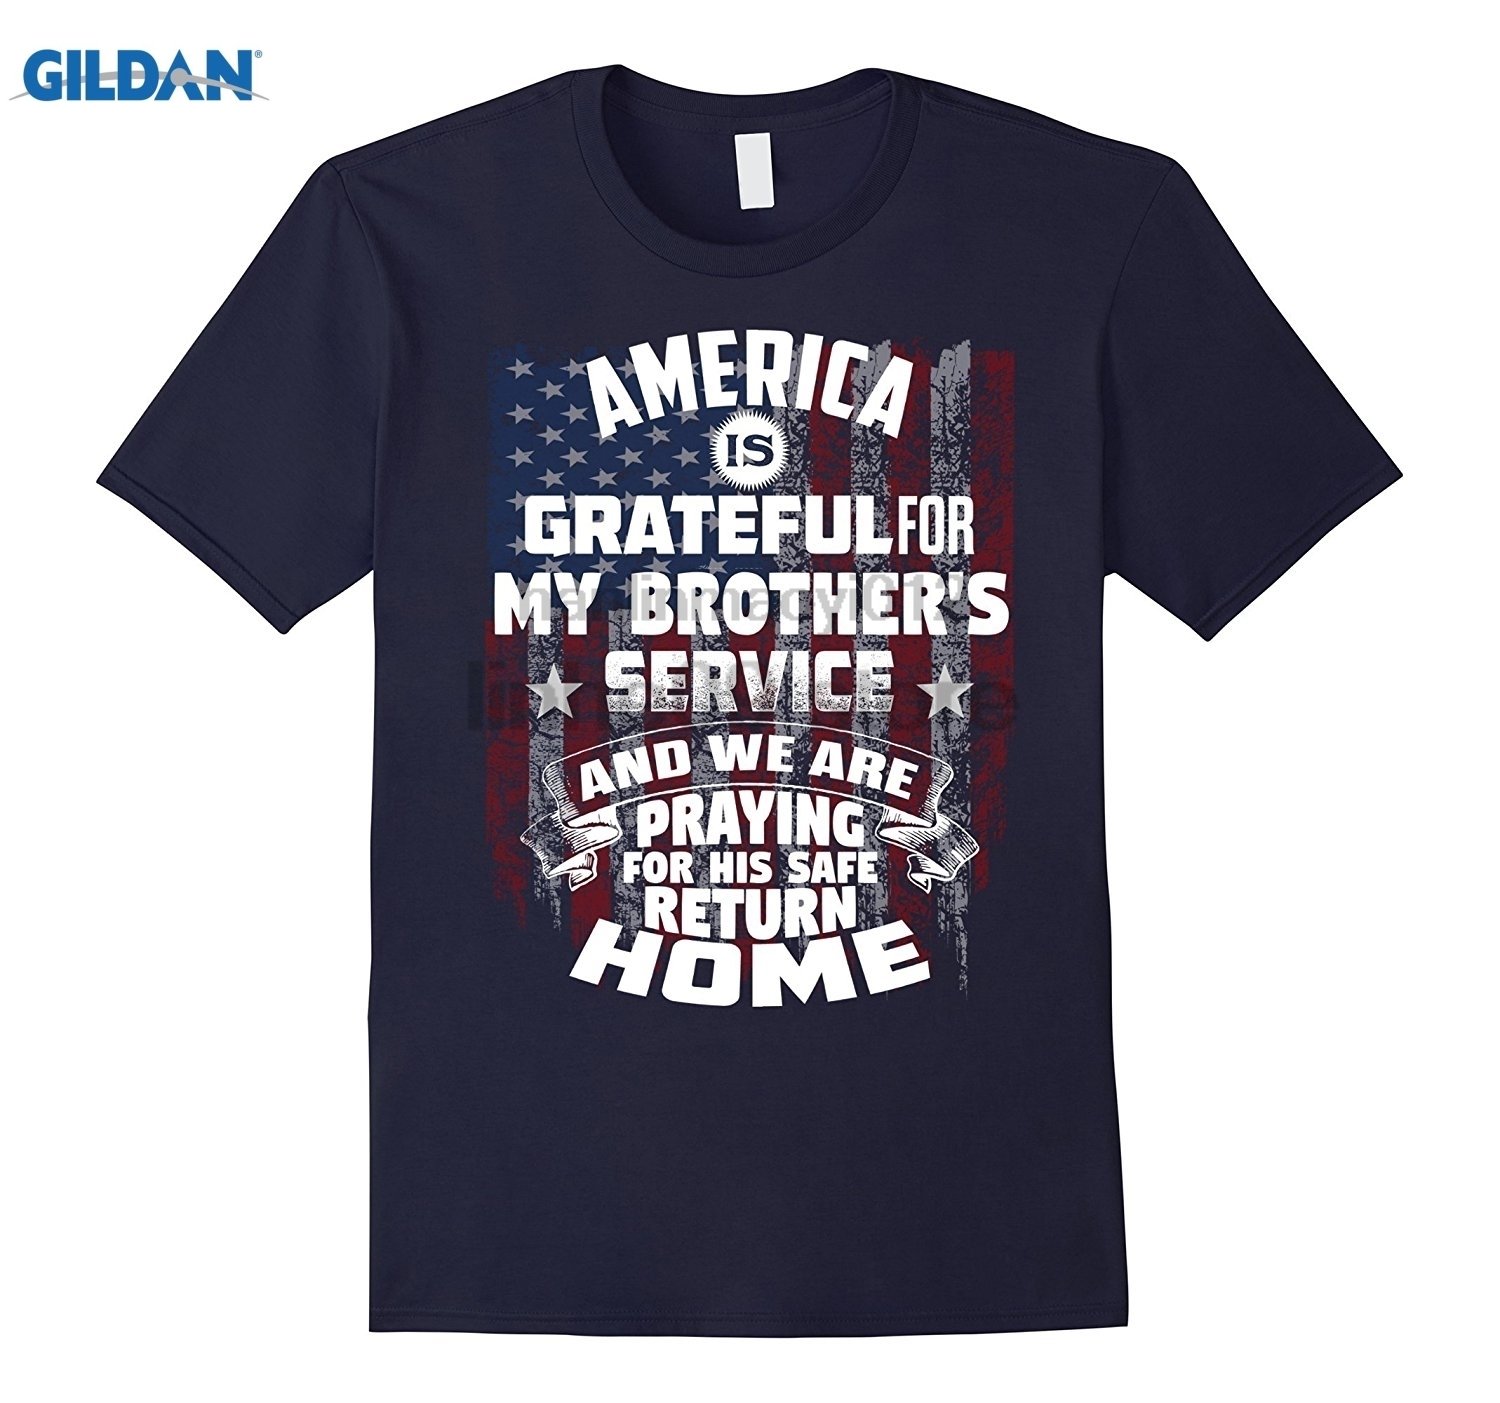 GILDAN Deployed Brother - Praying For His Safe Return Home Womens T-shirt